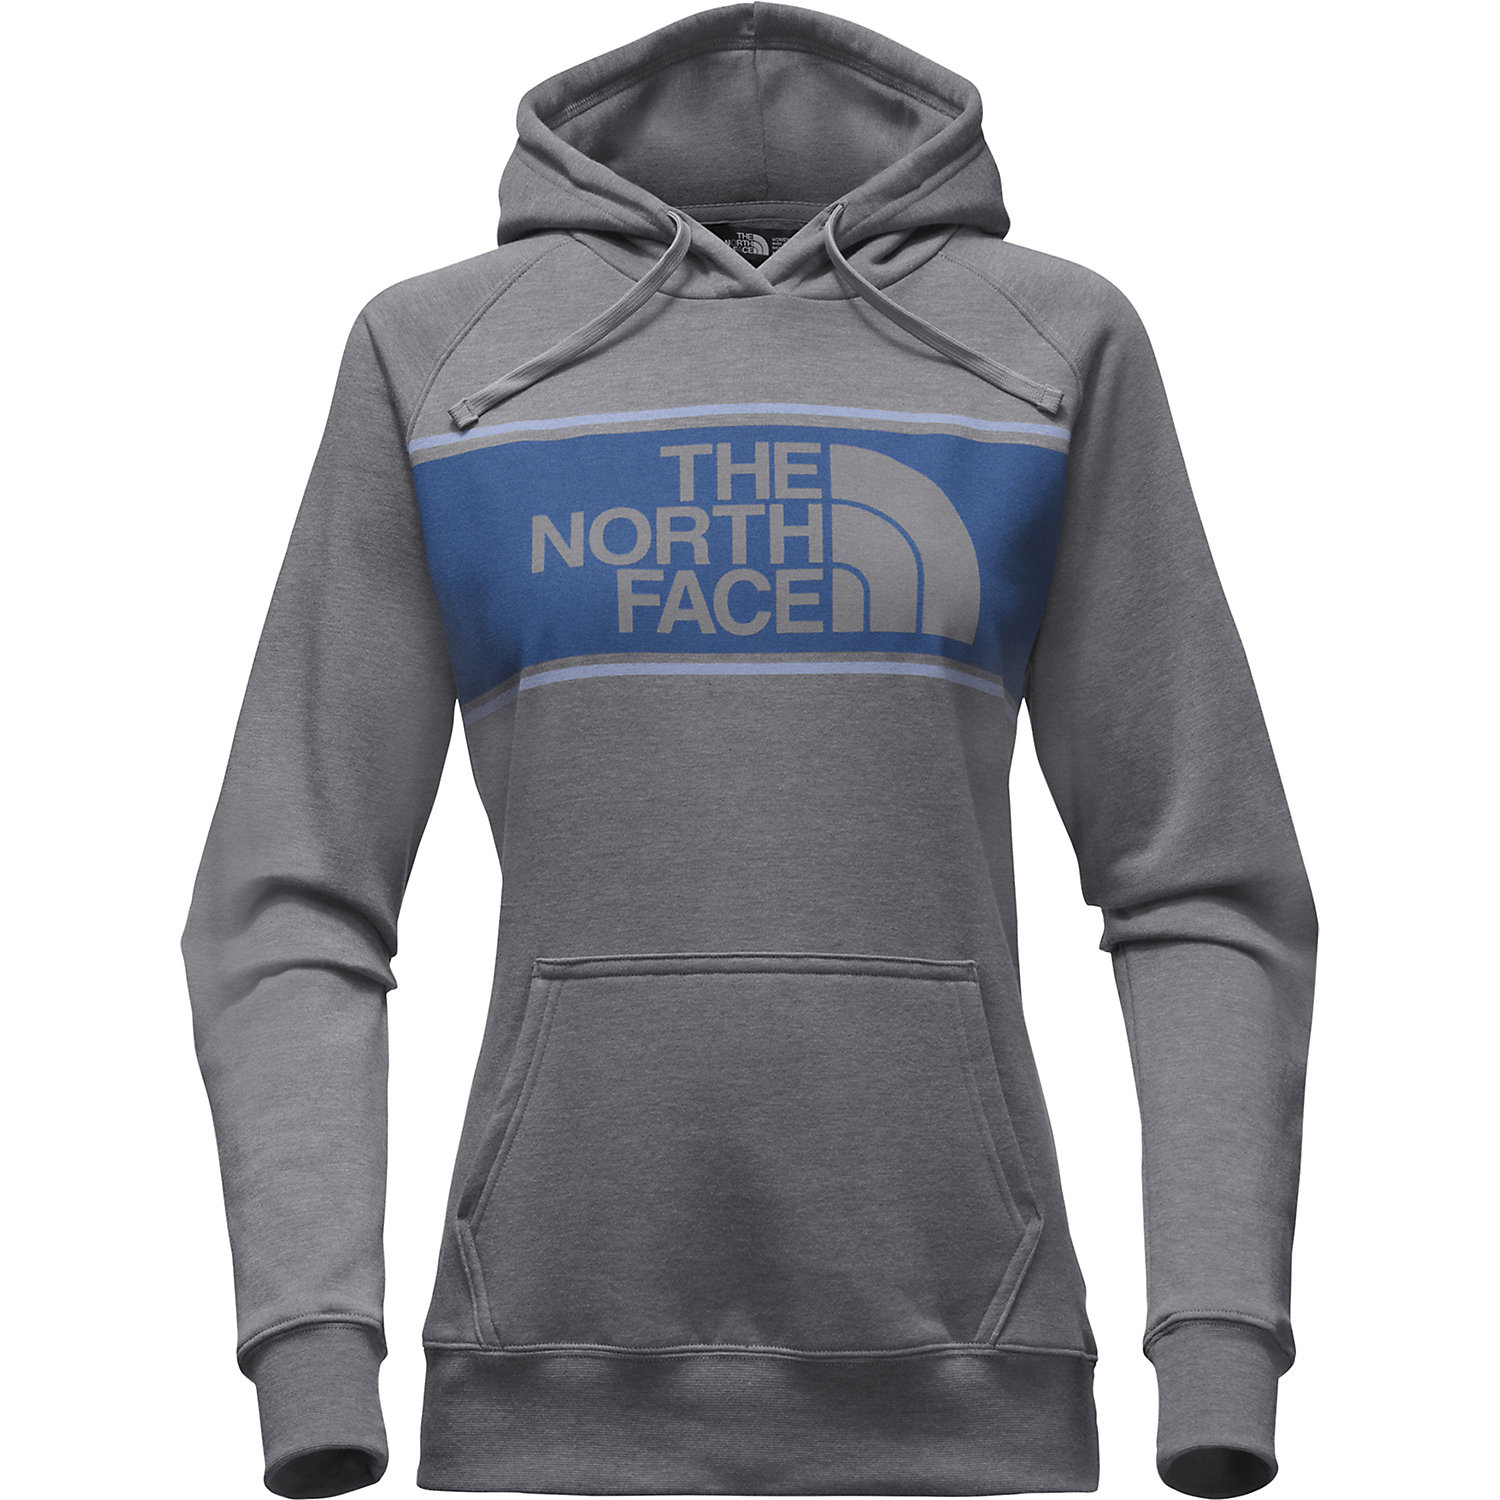 e536ab713 The North Face Women's Edge To Edge Pullover Hoodie